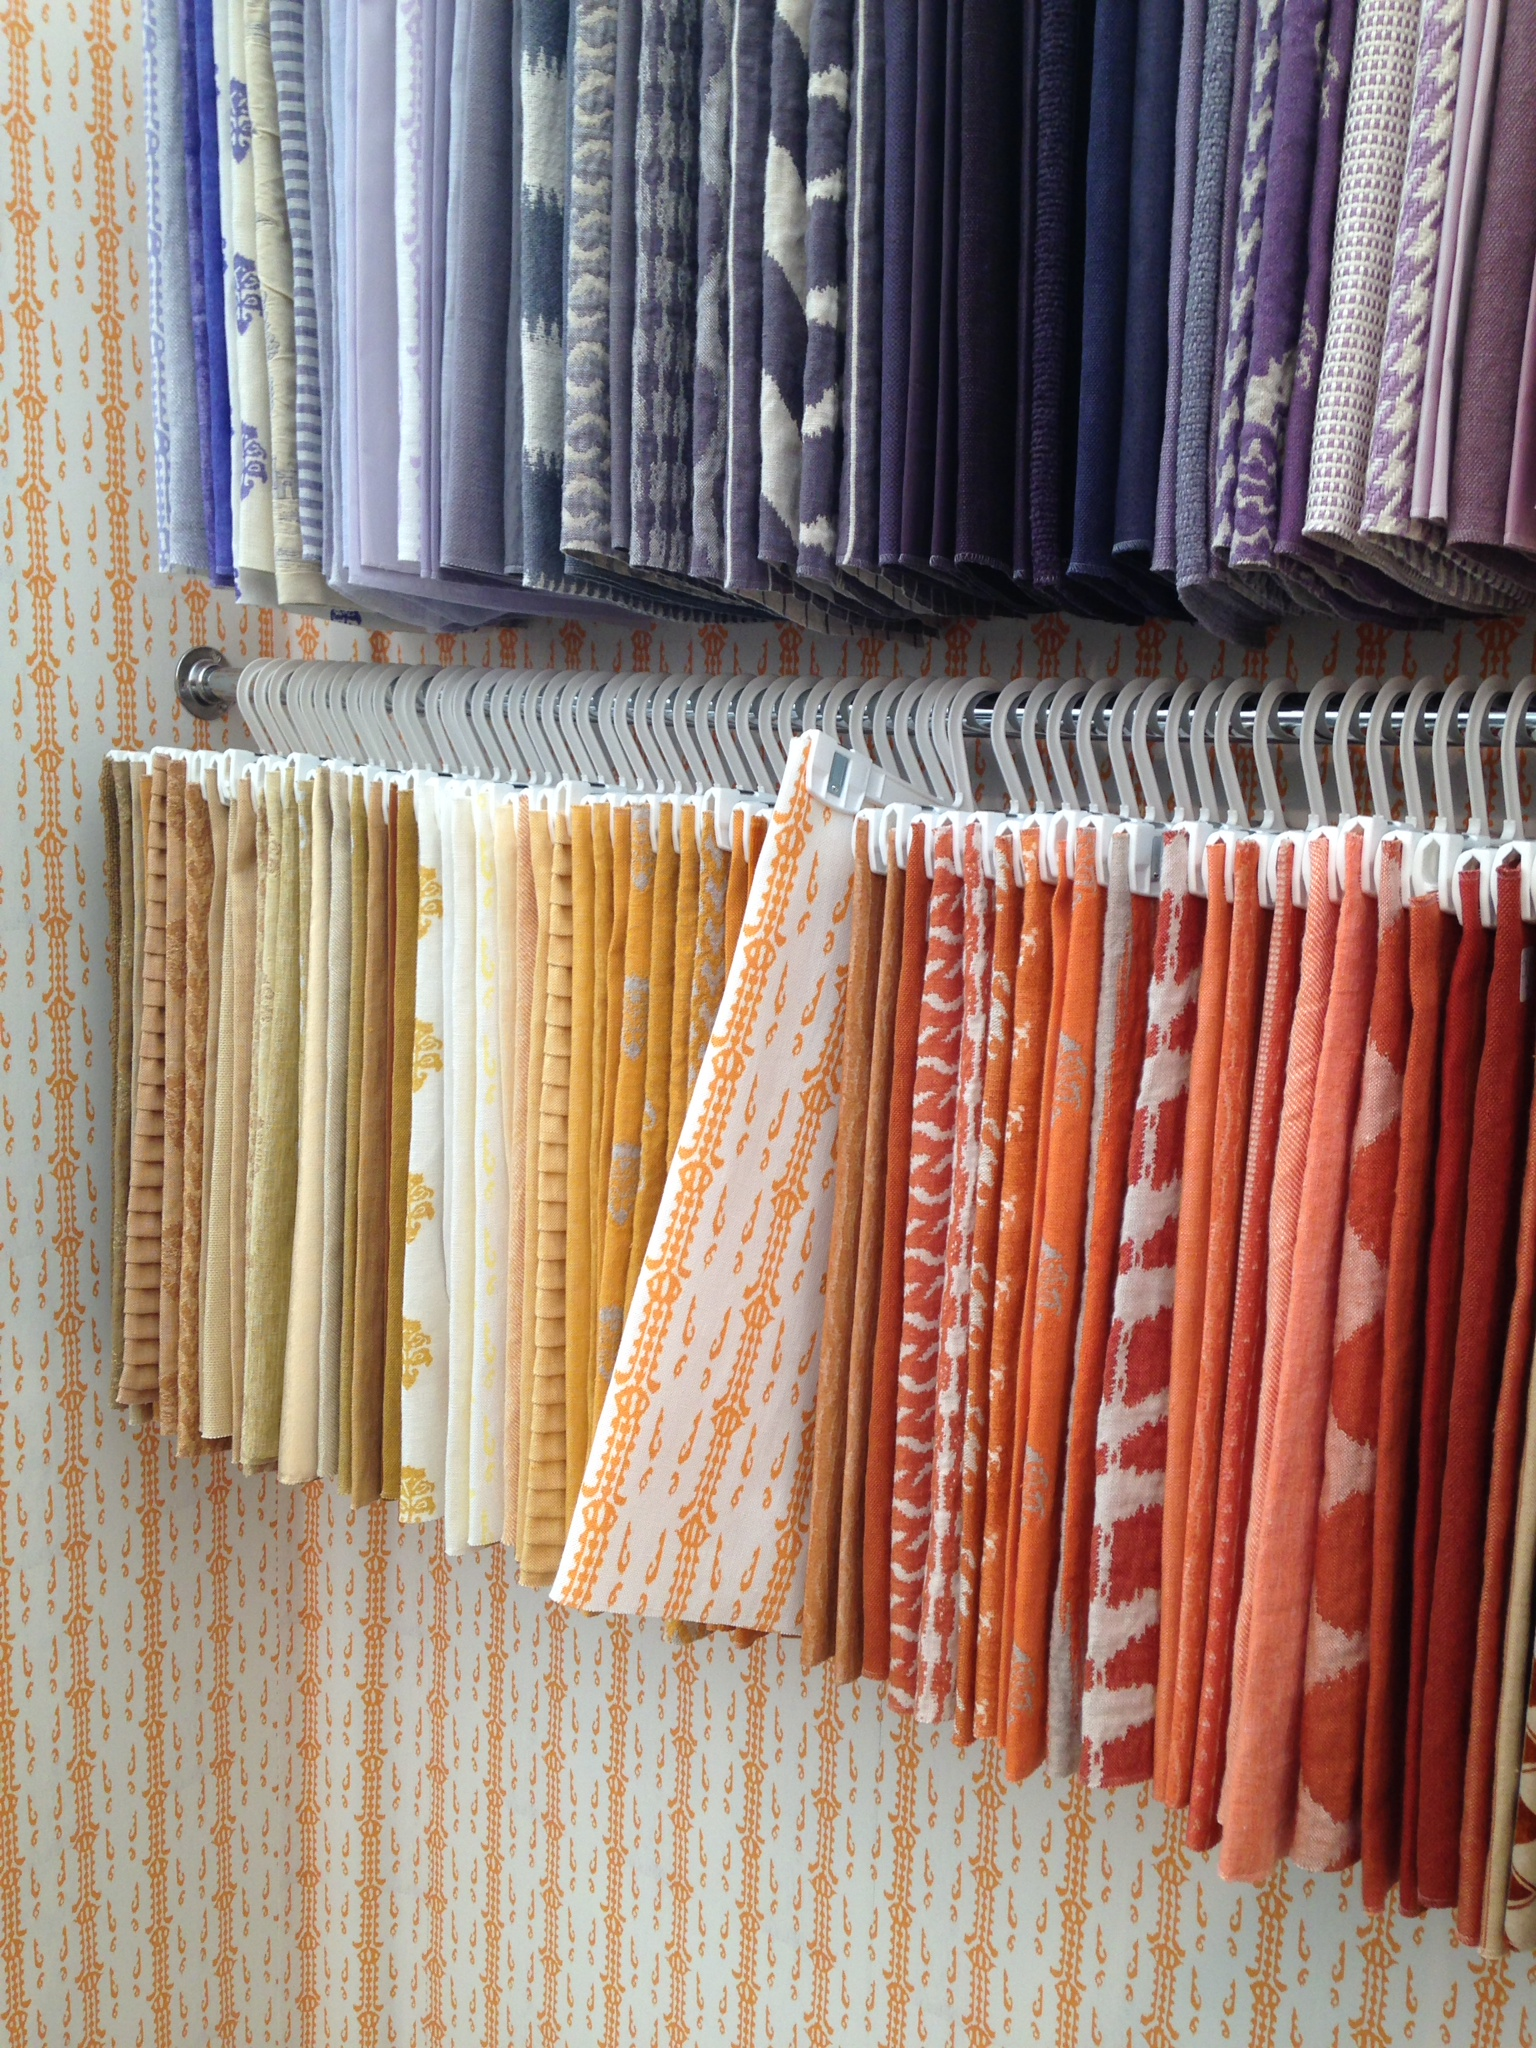 I'd quite happily live in a room decorated in C&C Milano's 'Apecar' fabric in orange, just as their stand was.